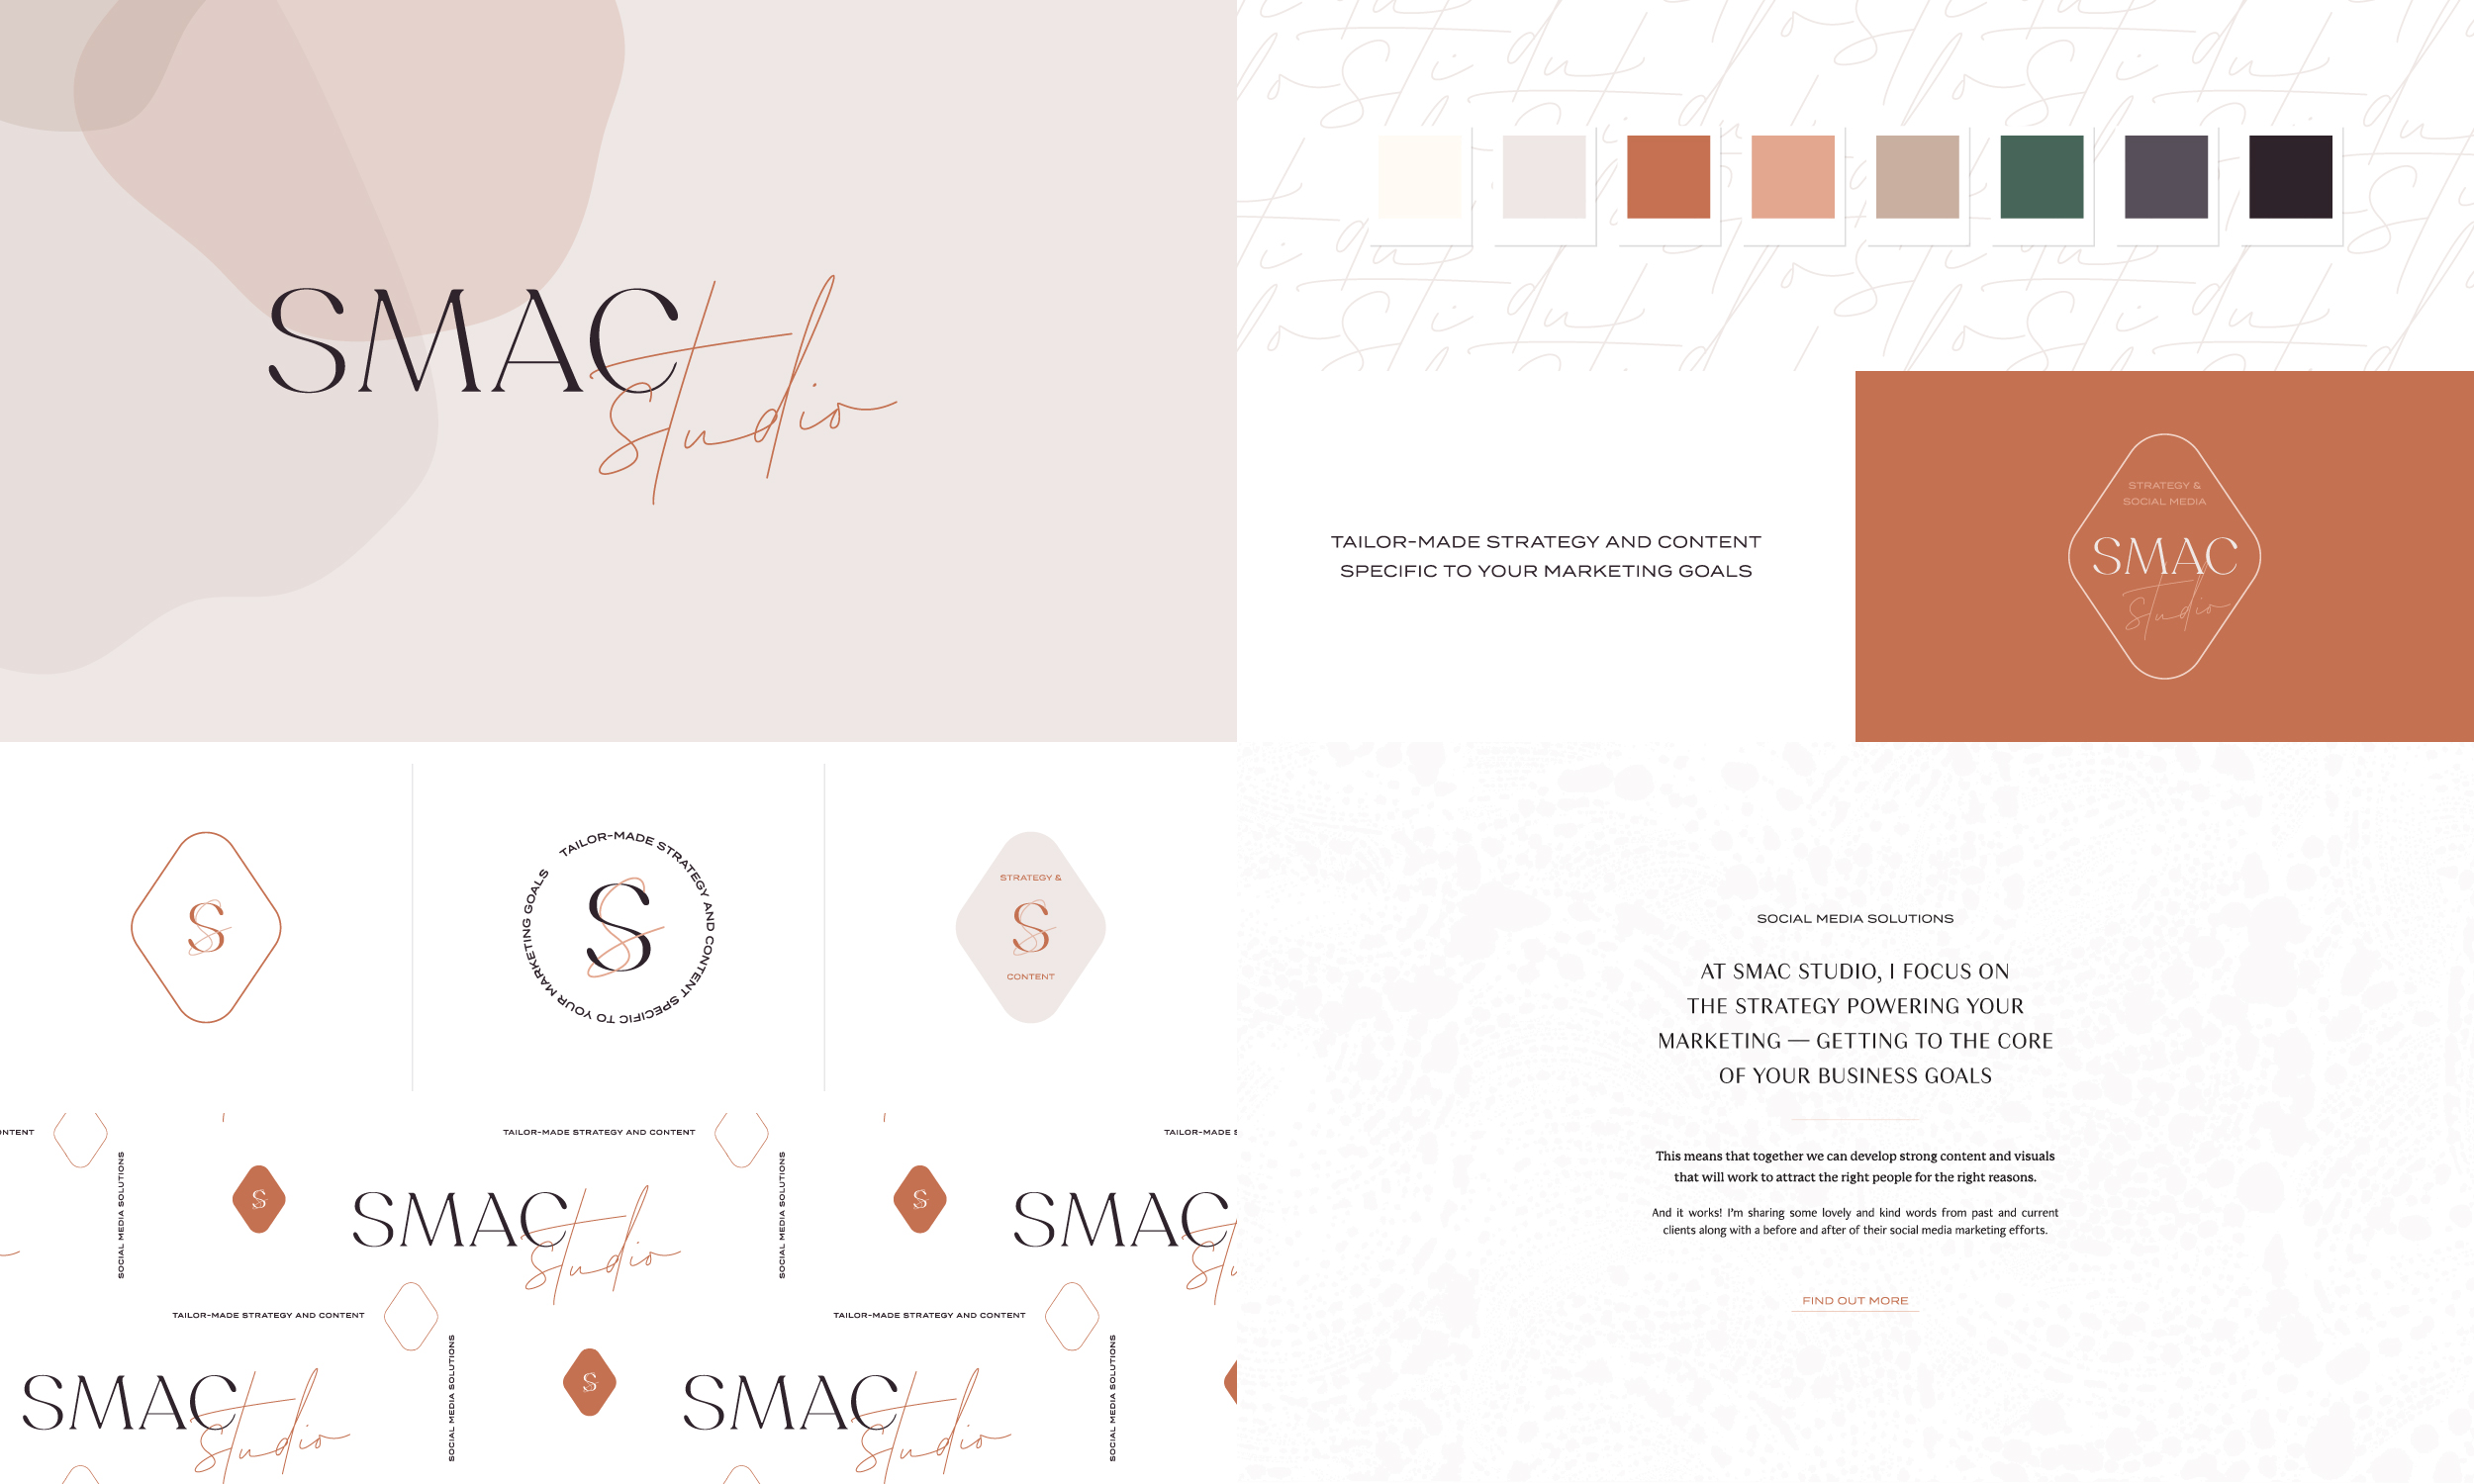 SMAC Studio branding and strategy by Freckled Design Studio